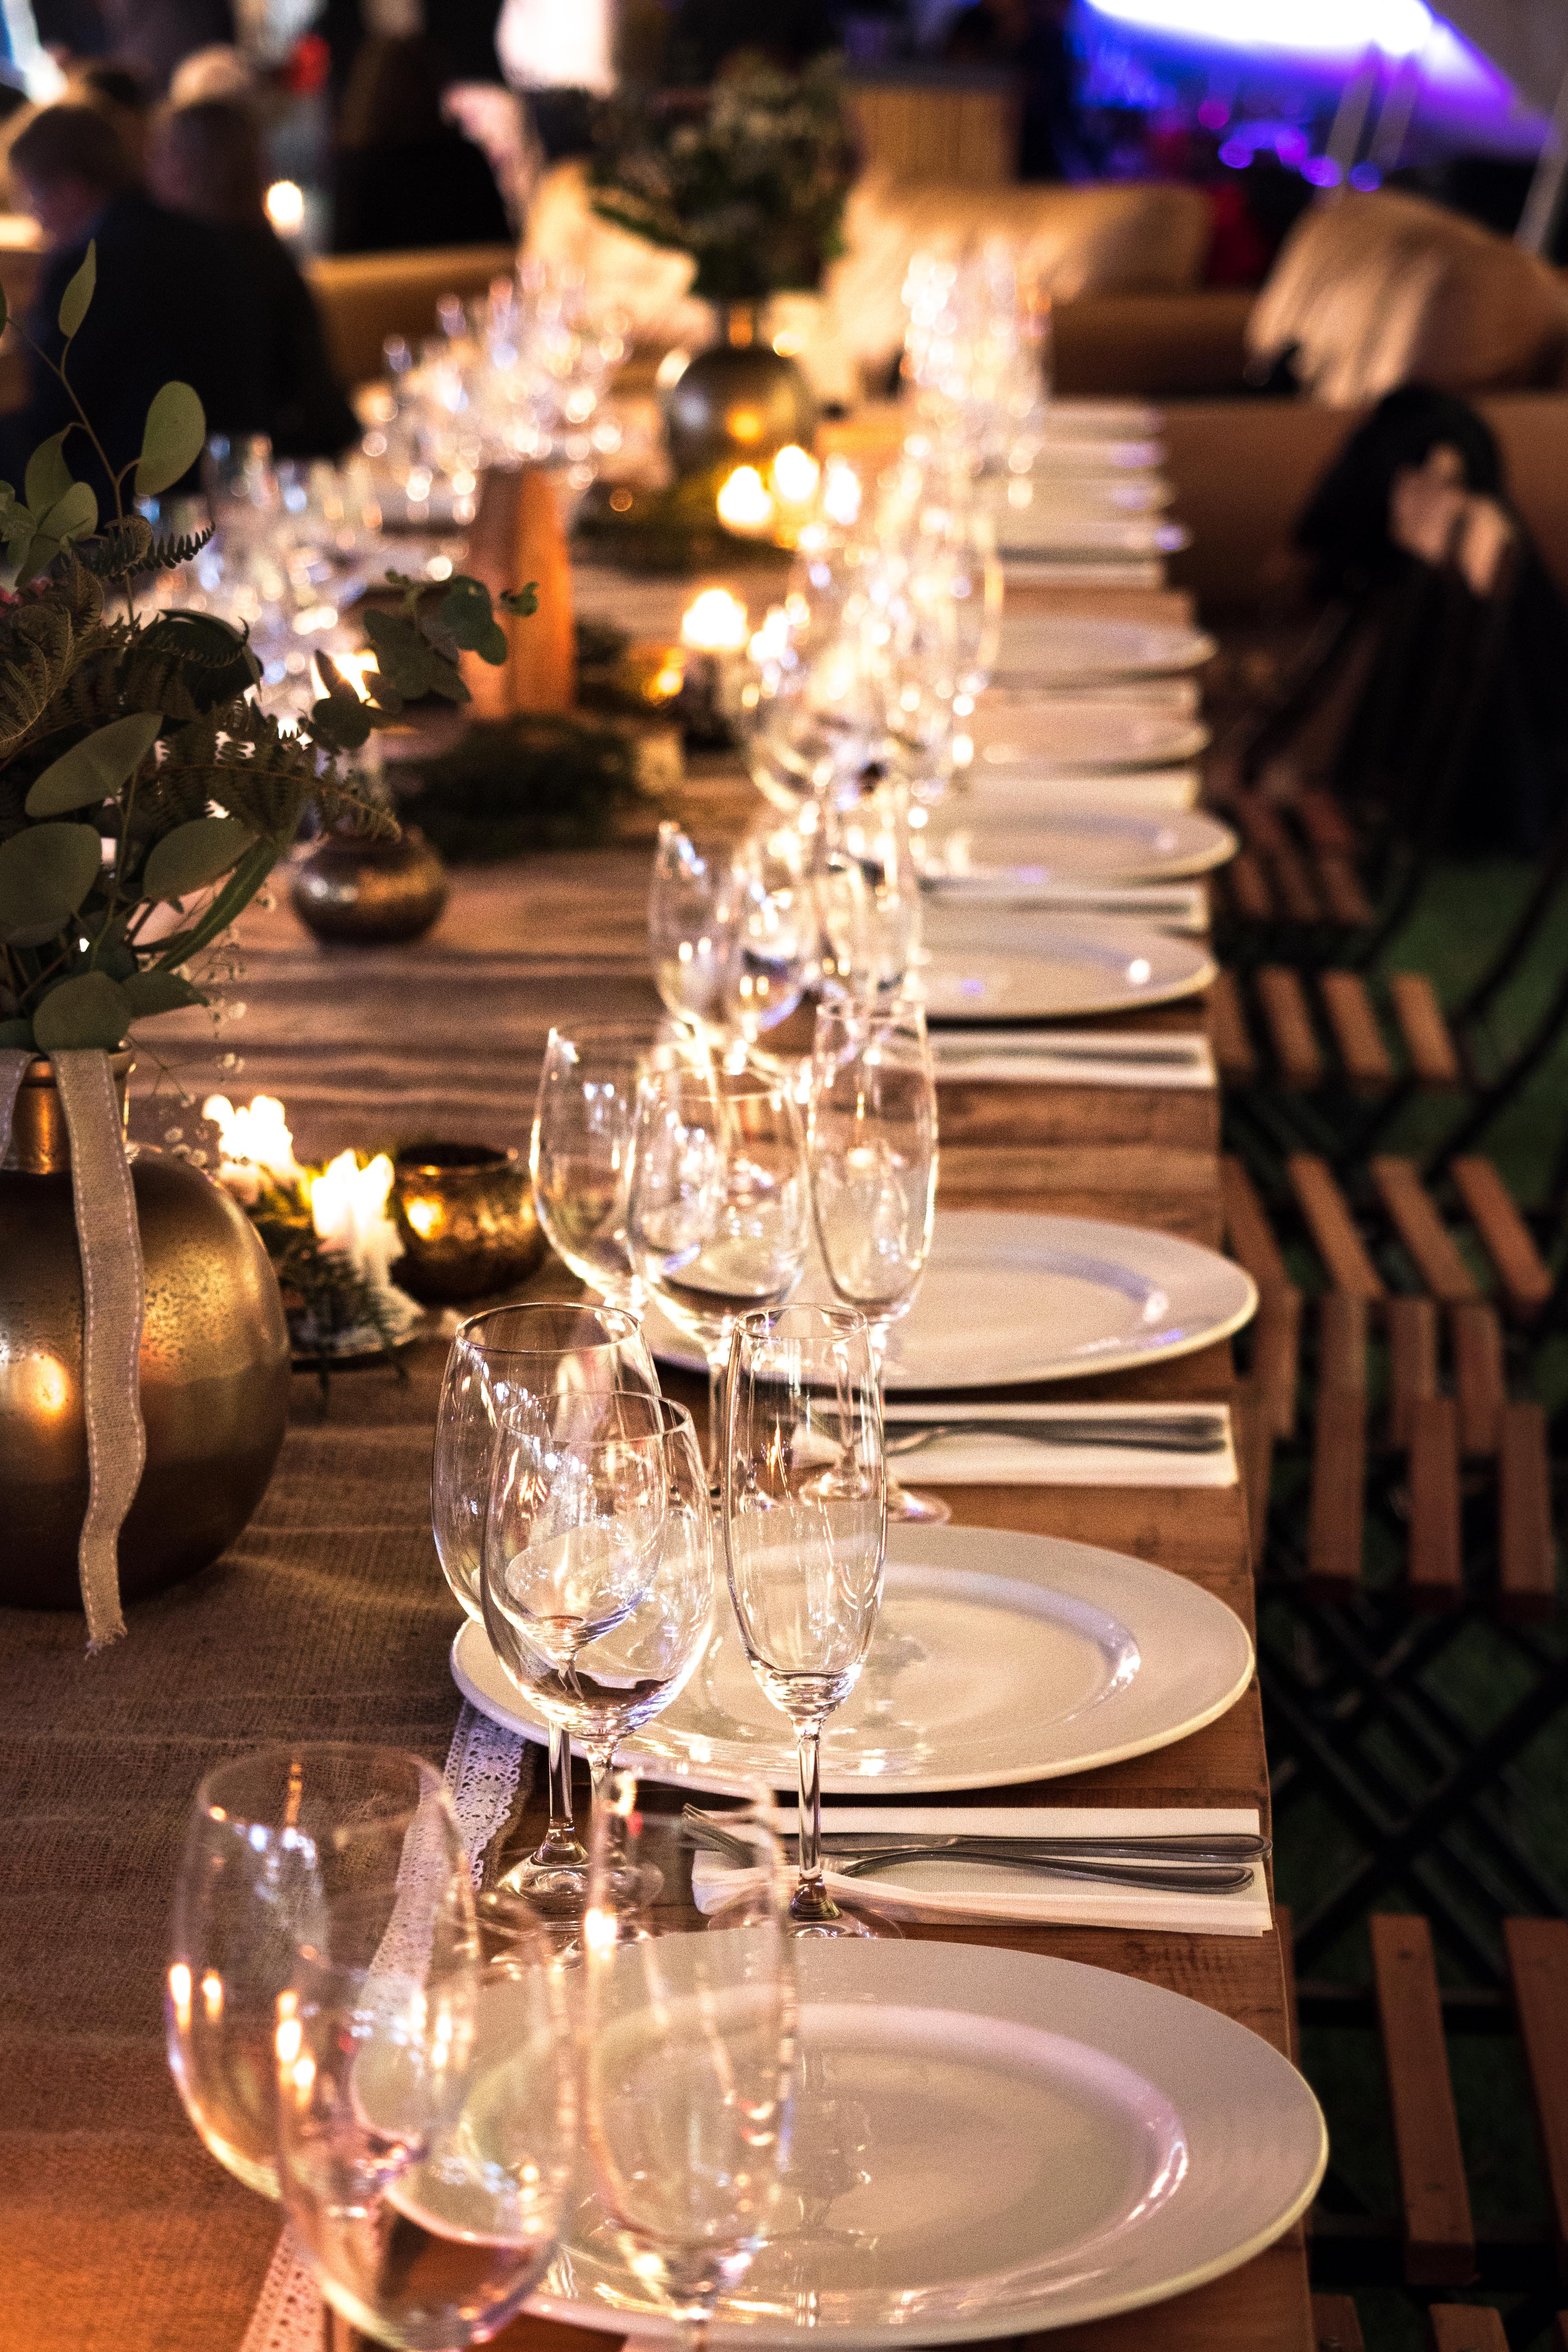 candle-candlelight-catering-1114427